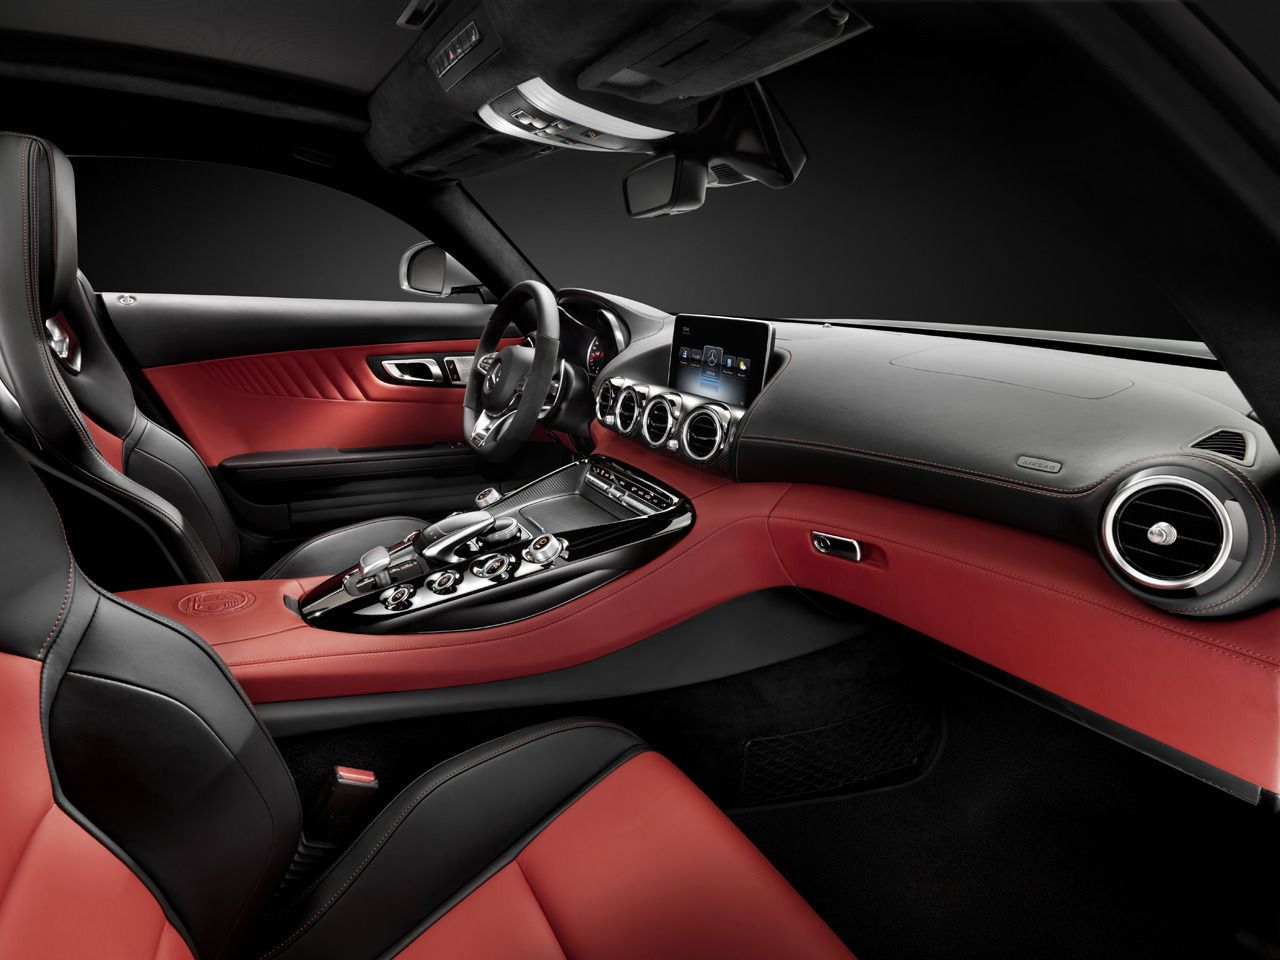 Top 10 most affordable luxury cars autospies auto news - Luxury Sports Car Interior Google Search